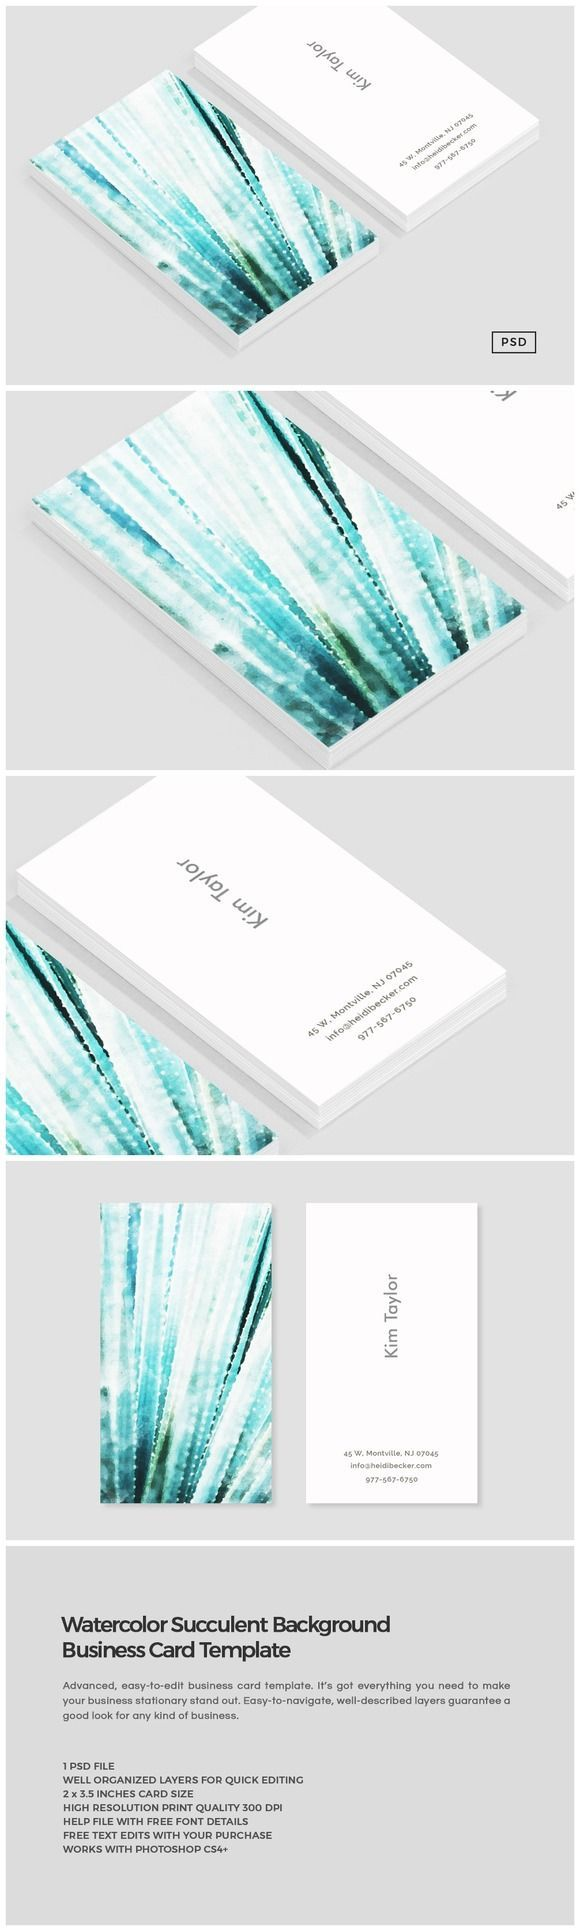 192 best BUSINESS CARDS images on Pinterest | Business cards ...